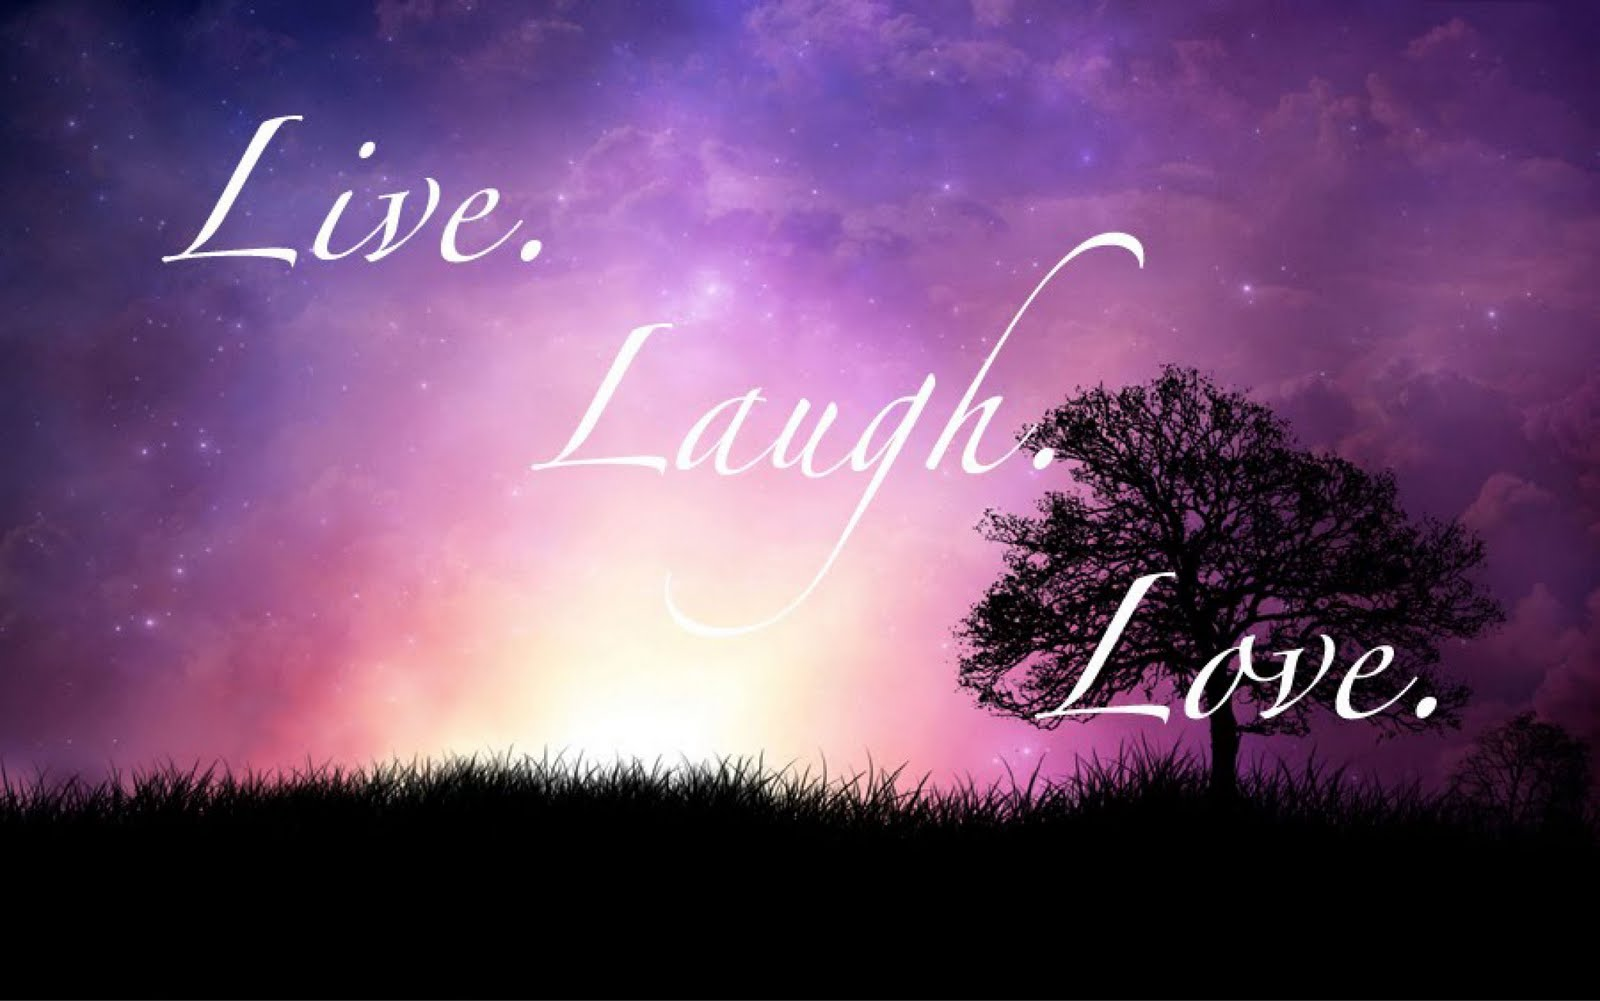 3d Love Live Wallpaper For Pc : Live Laugh Love Desktop Wallpaper - WallpaperSafari